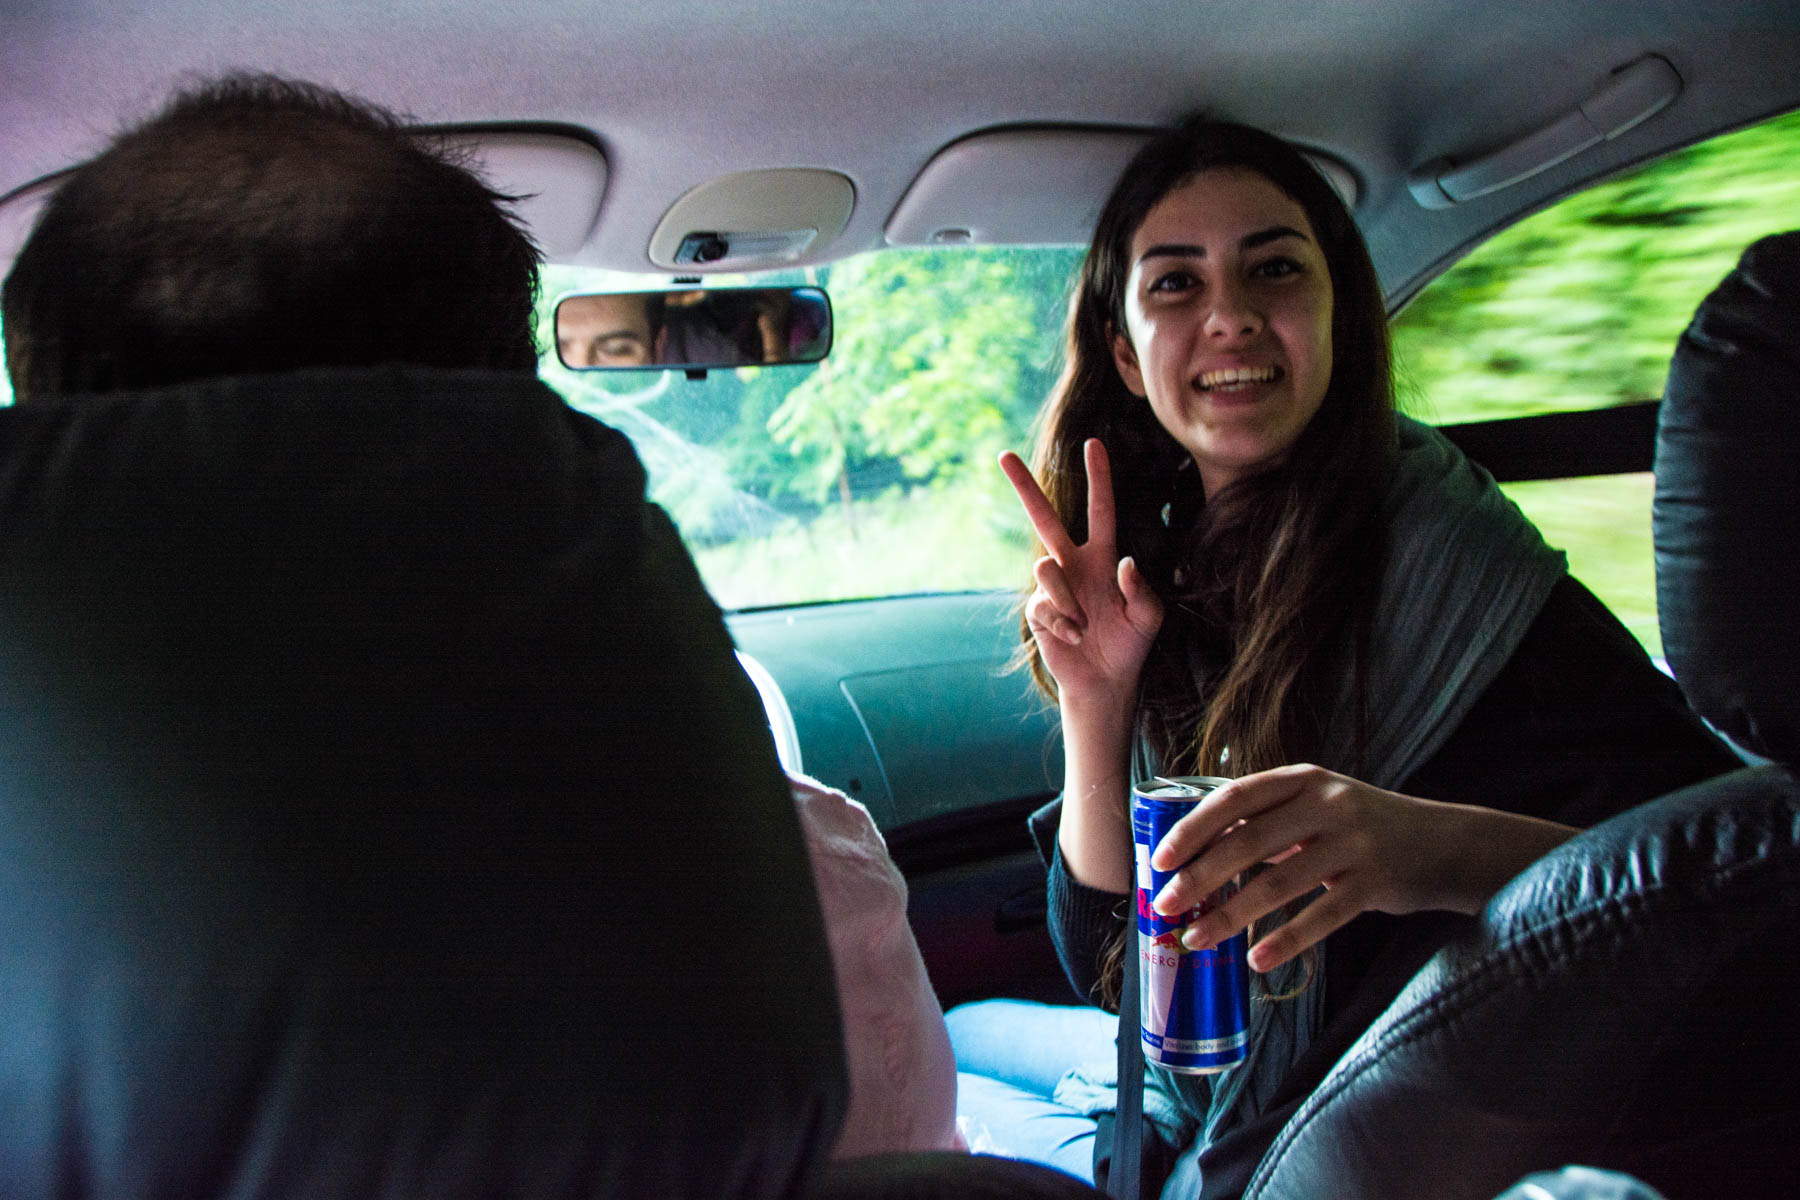 Tales of Iranian hospitality: crazy Masha, a Couchsurfing host, on the way back into the city center of Gorgan, Iran.